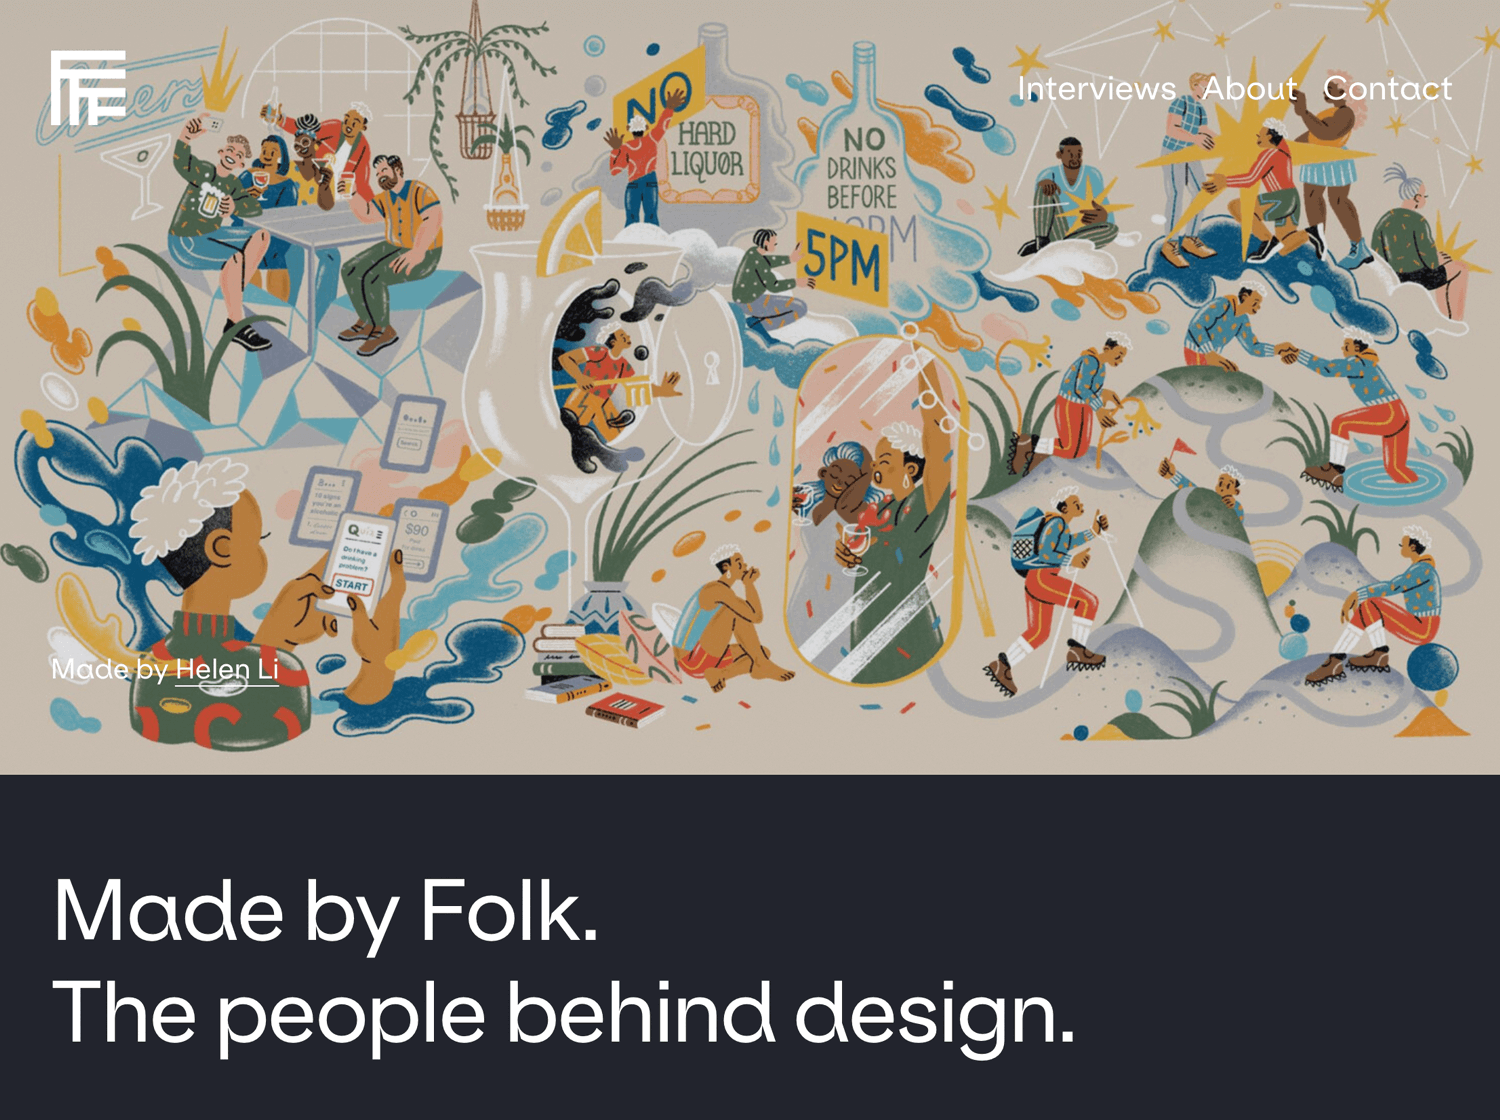 made by folk as web design blog for interviews